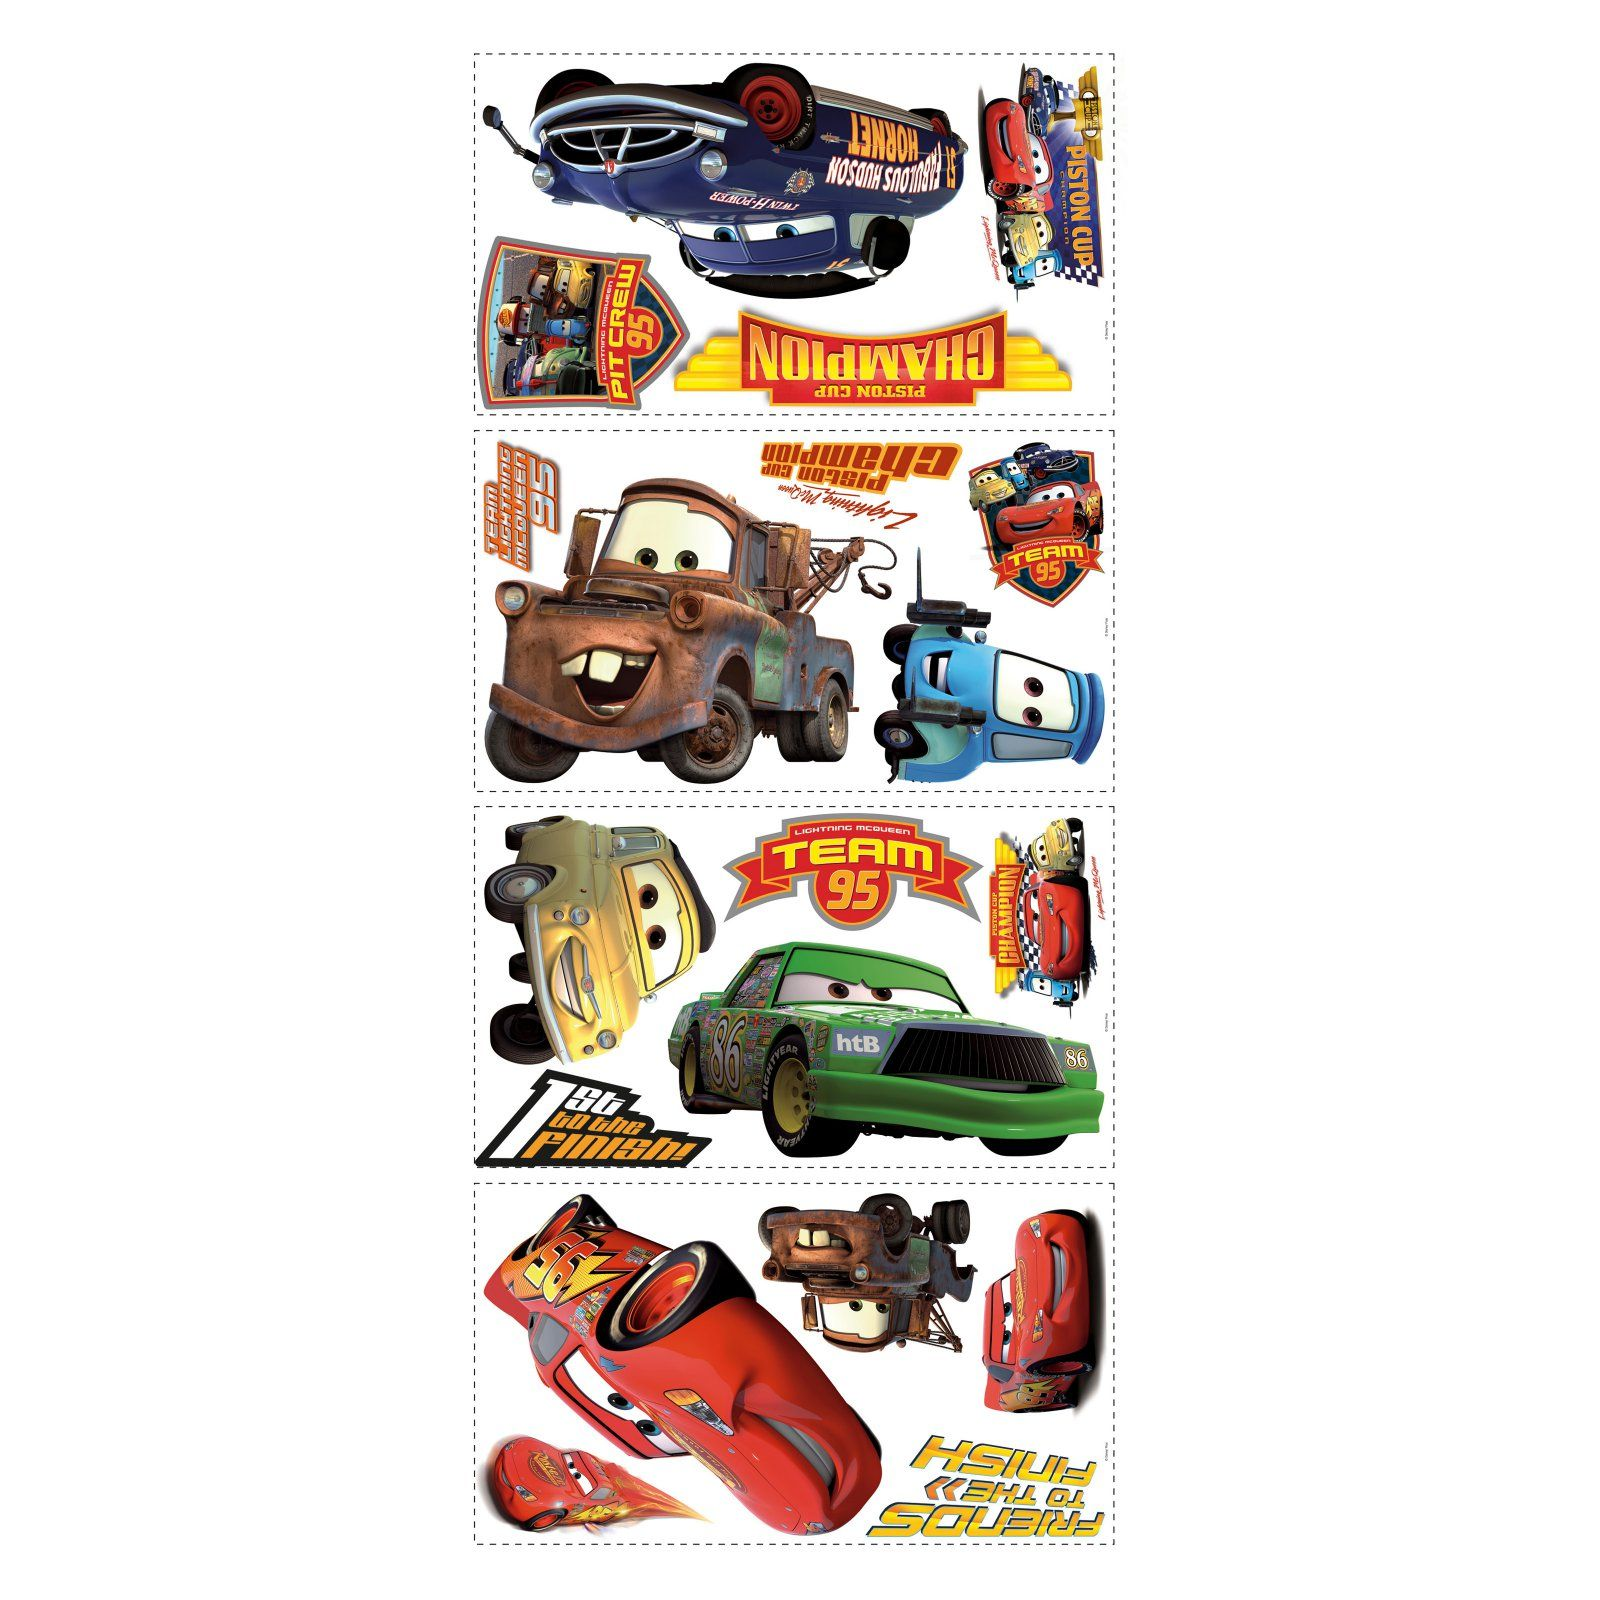 Cars Piston Cup Champs Peel And Stick Wall Decals In 2021 Disney Cars Disney Pixar Cars Pixar Cars [ 1600 x 1600 Pixel ]